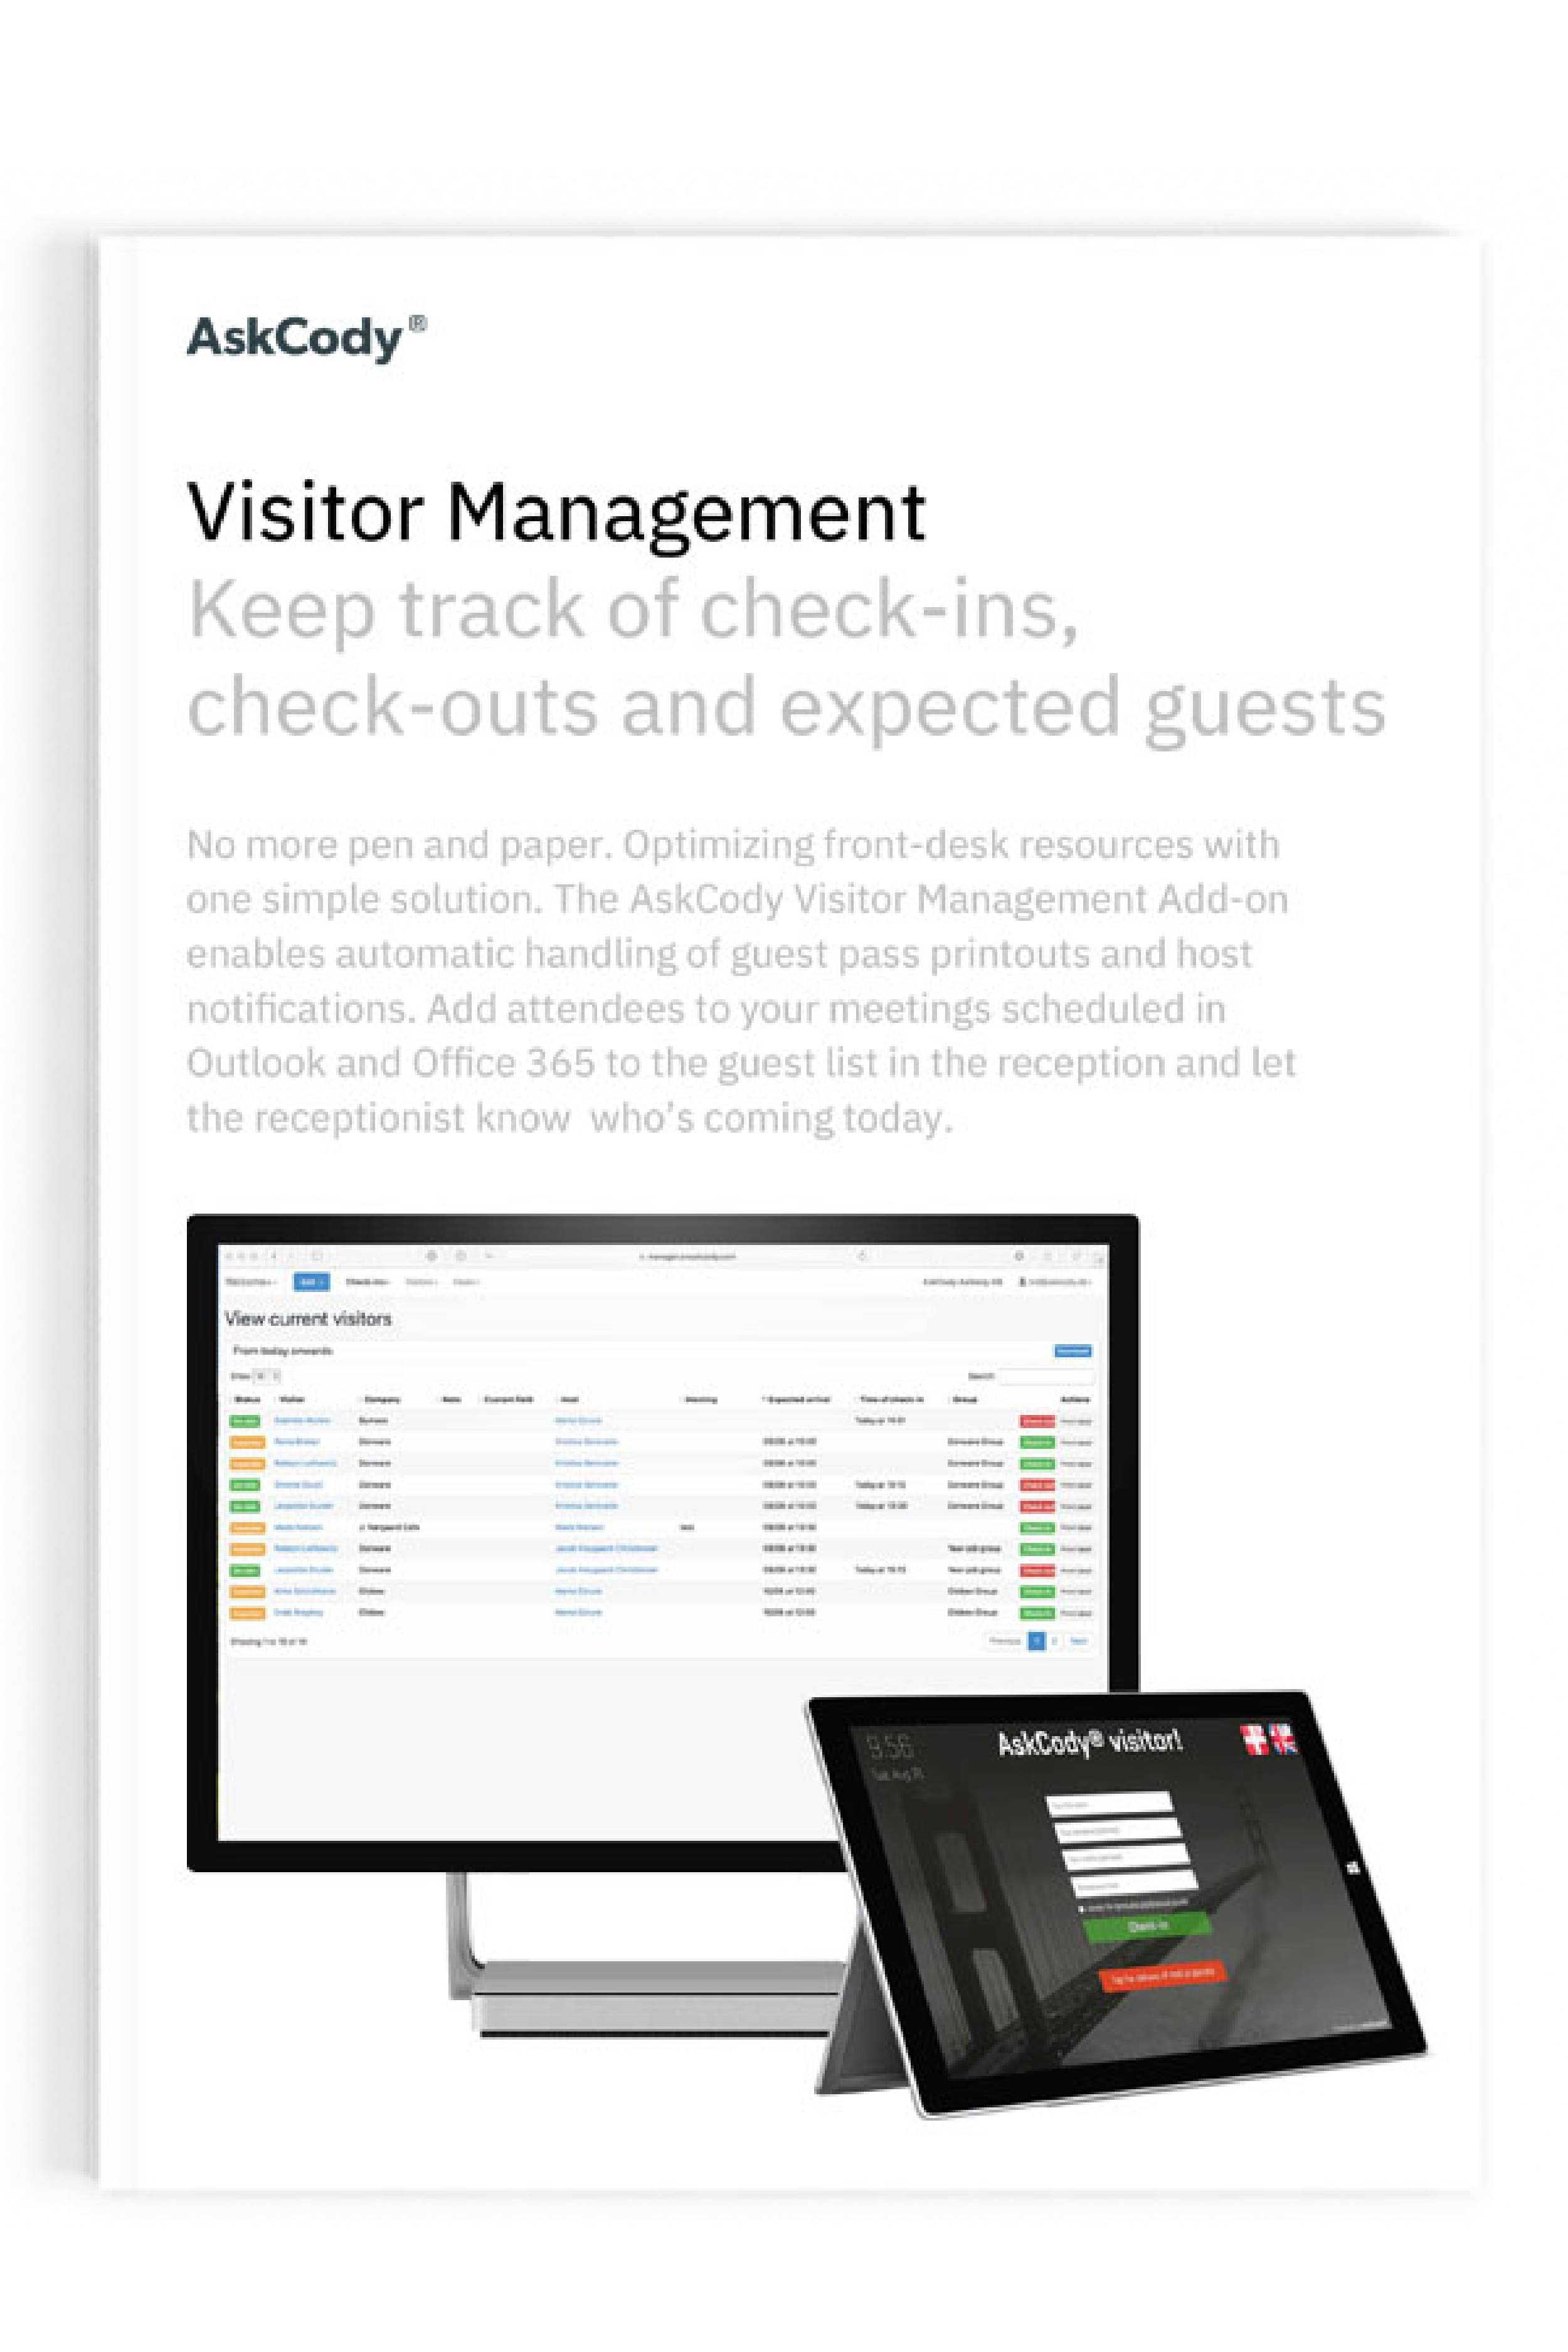 Visitor Management Product sheet